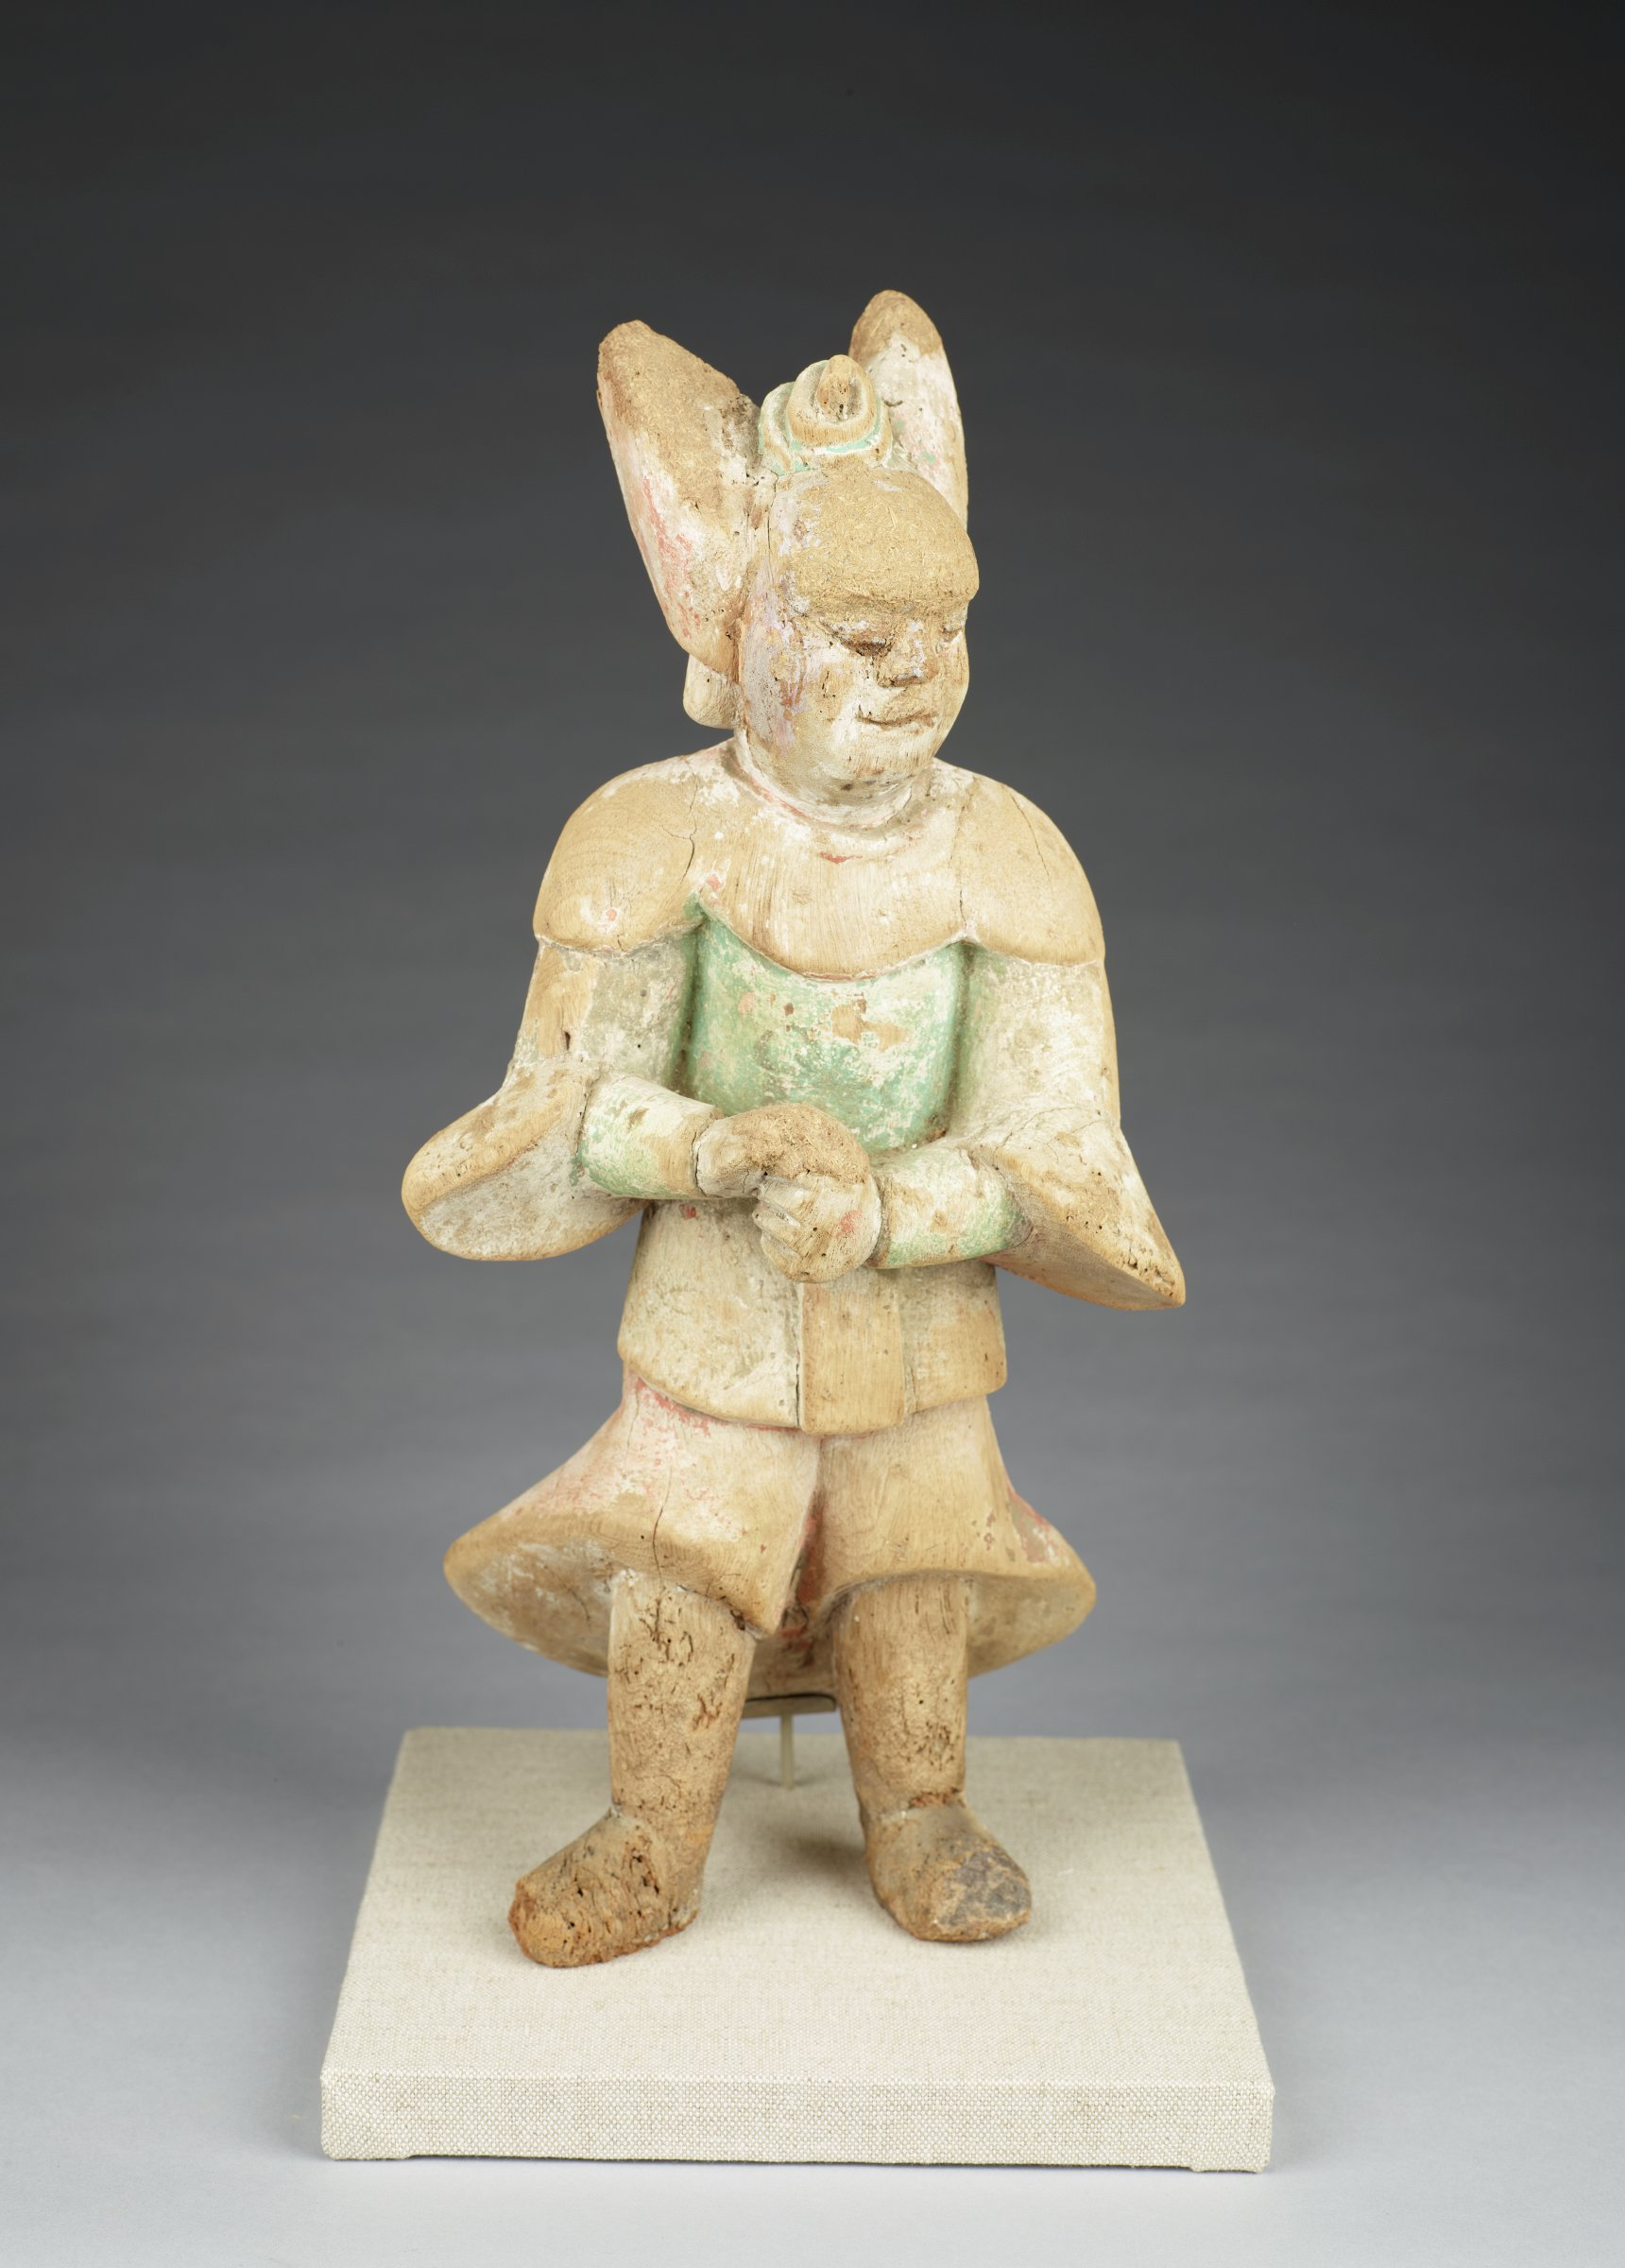 This stout standing figure retains trases of green and white paint. His legs splayed sighlyt to support his stocky aspect, his arms are bent at the elbows with the proper right hand resting on top of the the left fist. His trousers and sleeves are flared in a dynamic movement. His upstanding hairstyle is typical of fierce, protective figures and a small coiled snake rests between his locks. His head is turned to the proper left. He wears a cloud colar and high boots.